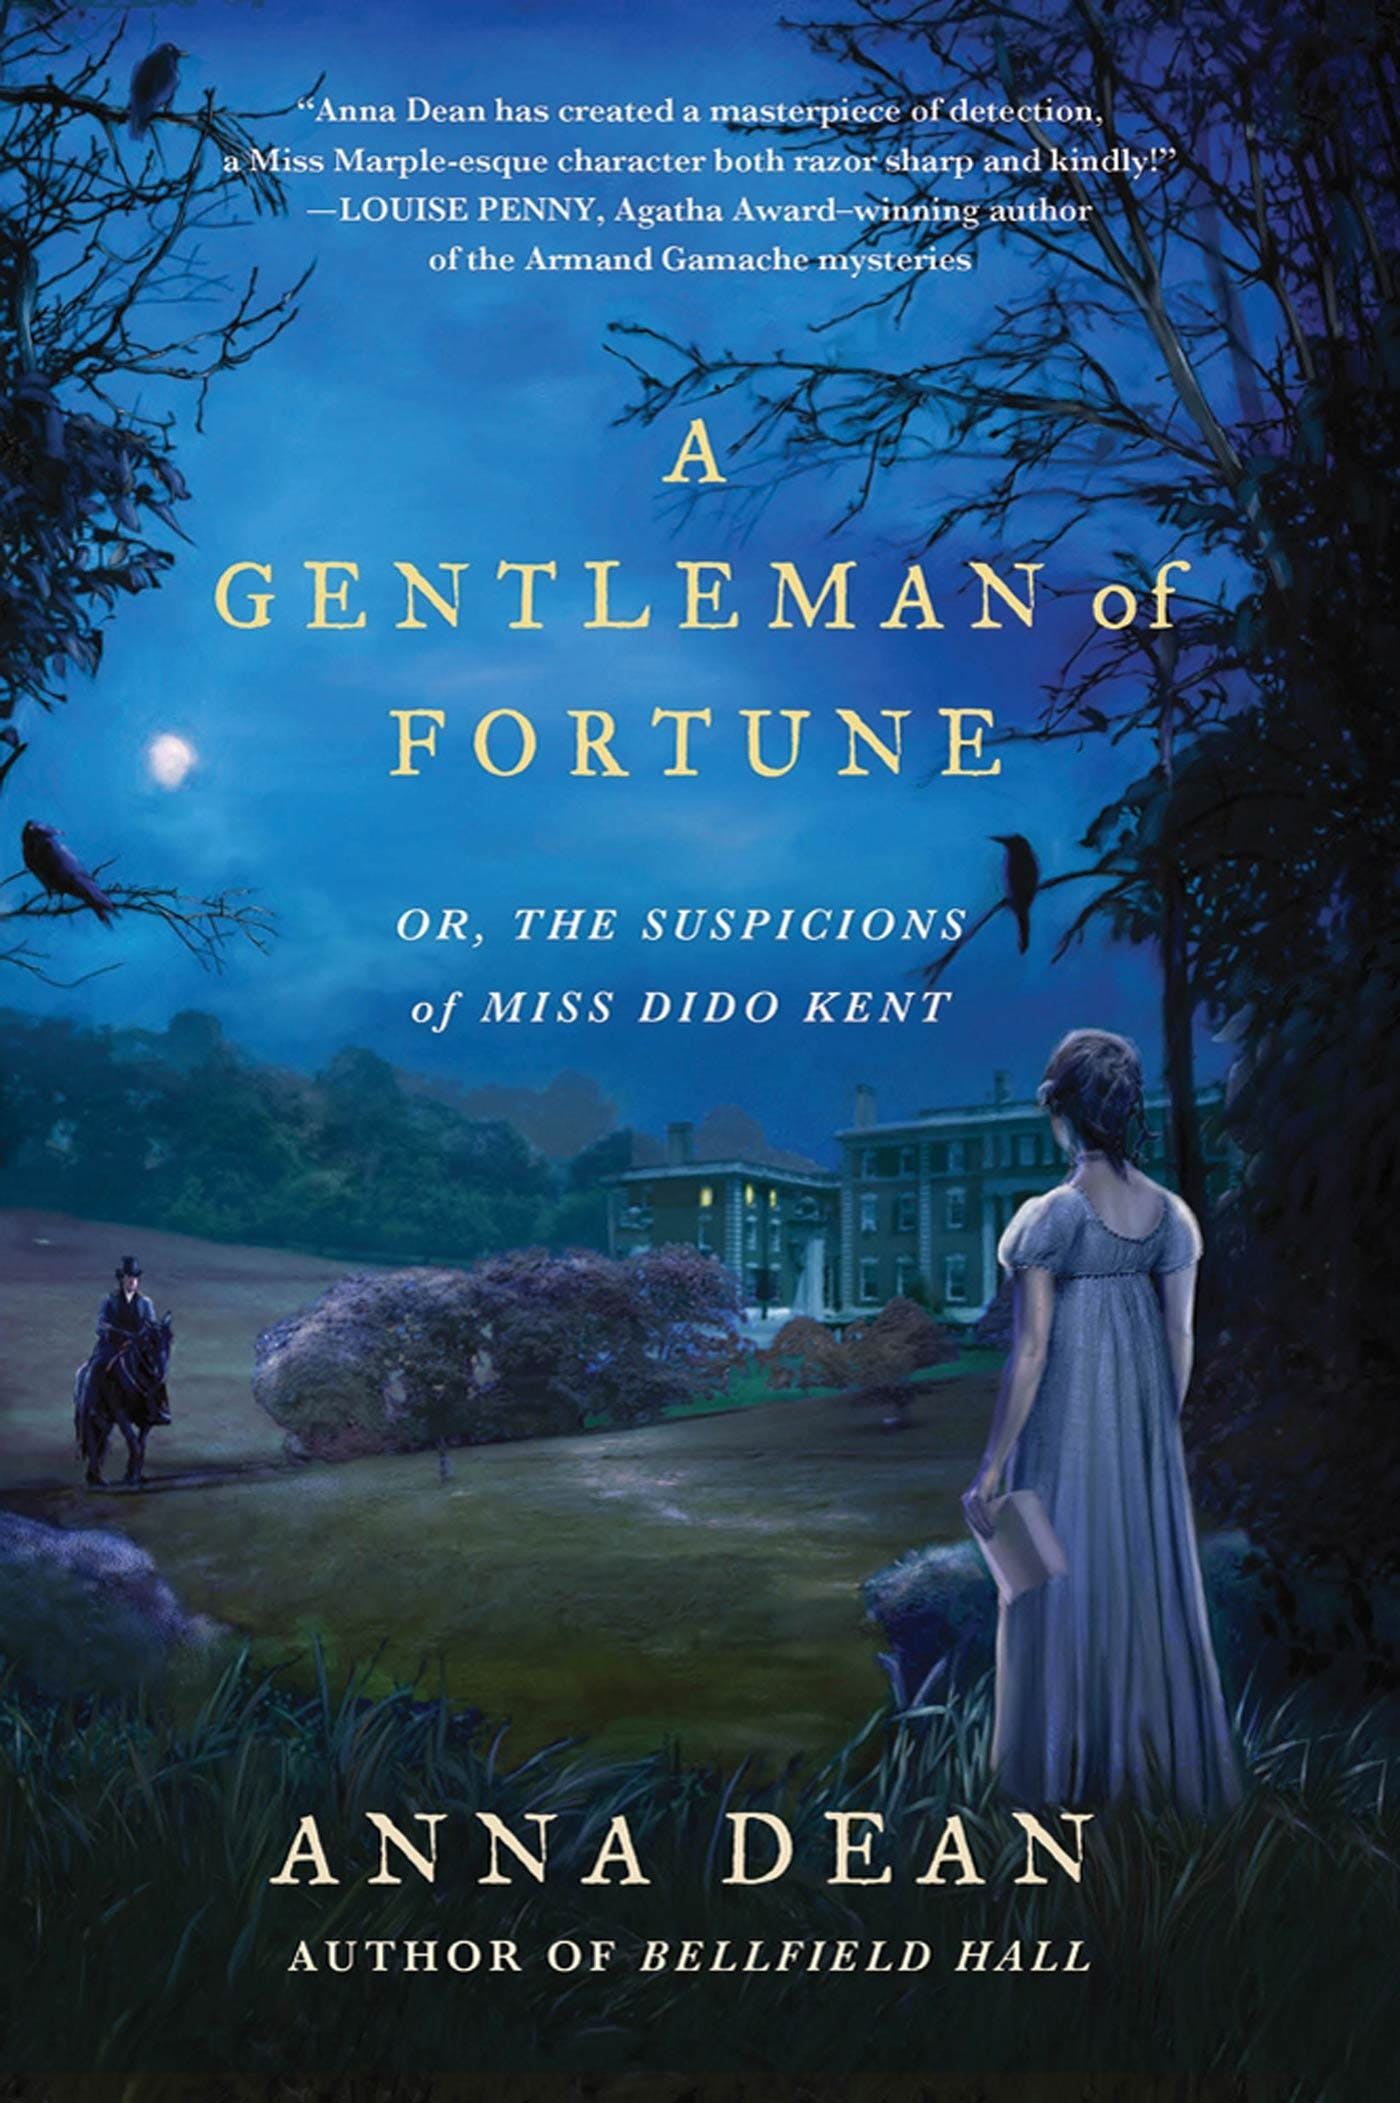 Image of A Gentleman of Fortune